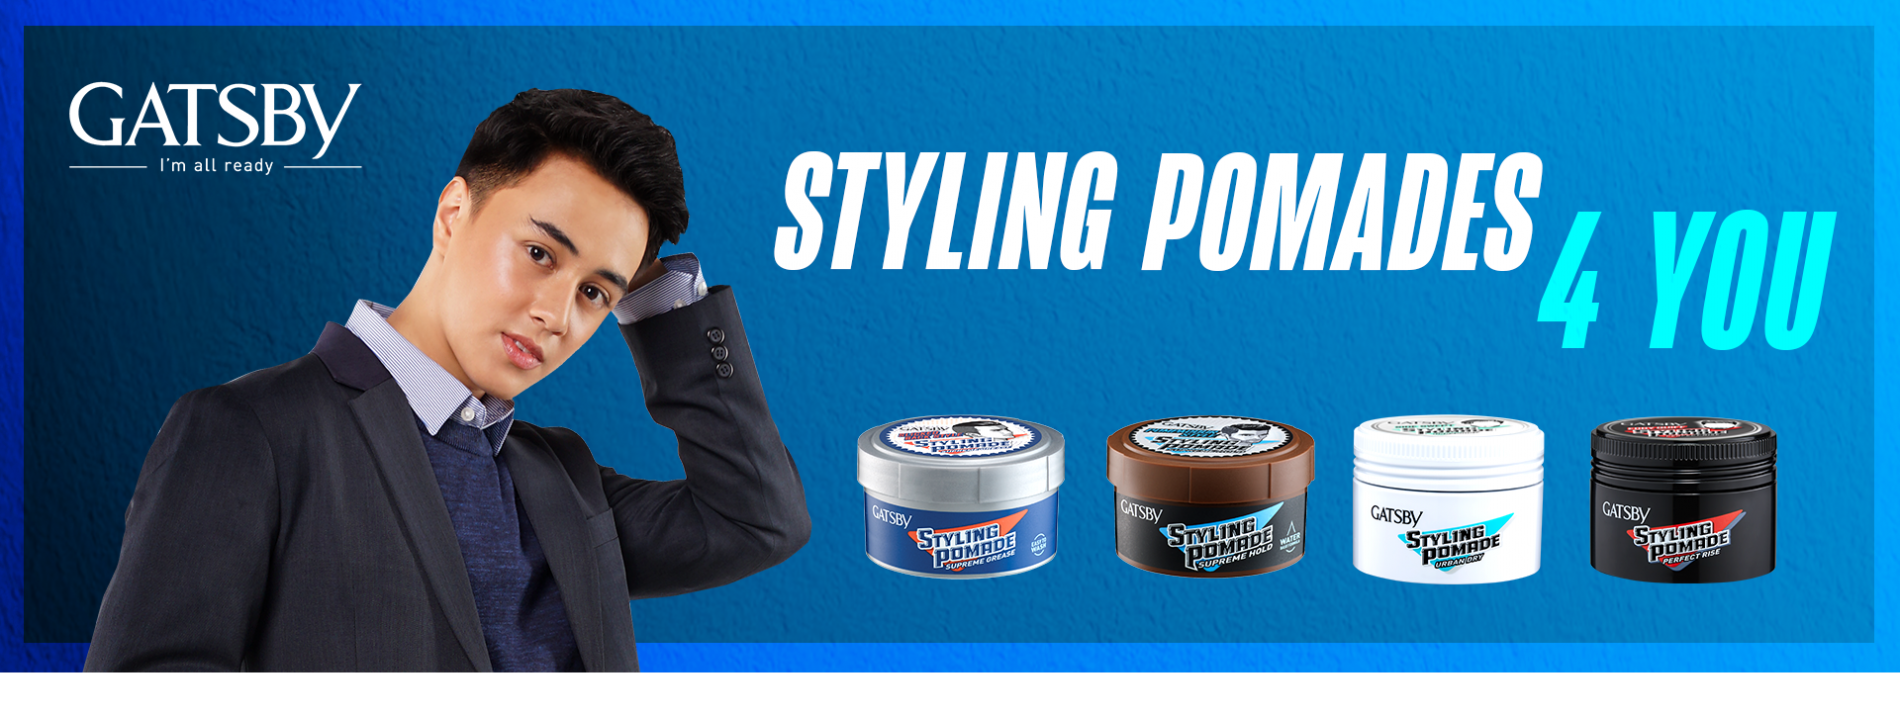 GATSBY Styling Pomades with Edward Barber